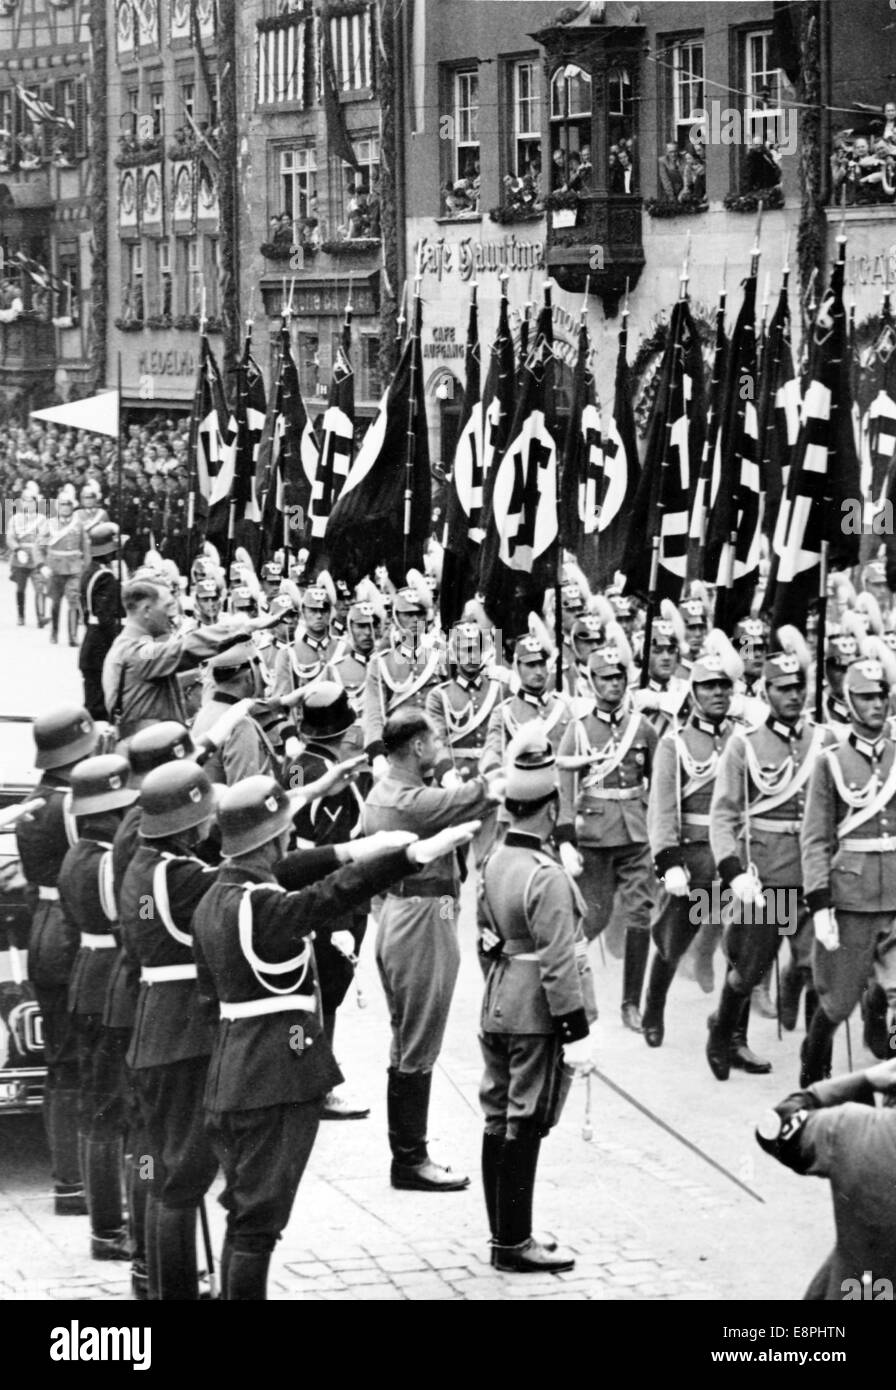 Nuremberg Rally in Nuremberg, Germany - Adolf Hitler stands in a car and takes the salute during a march-past of Stock Photo